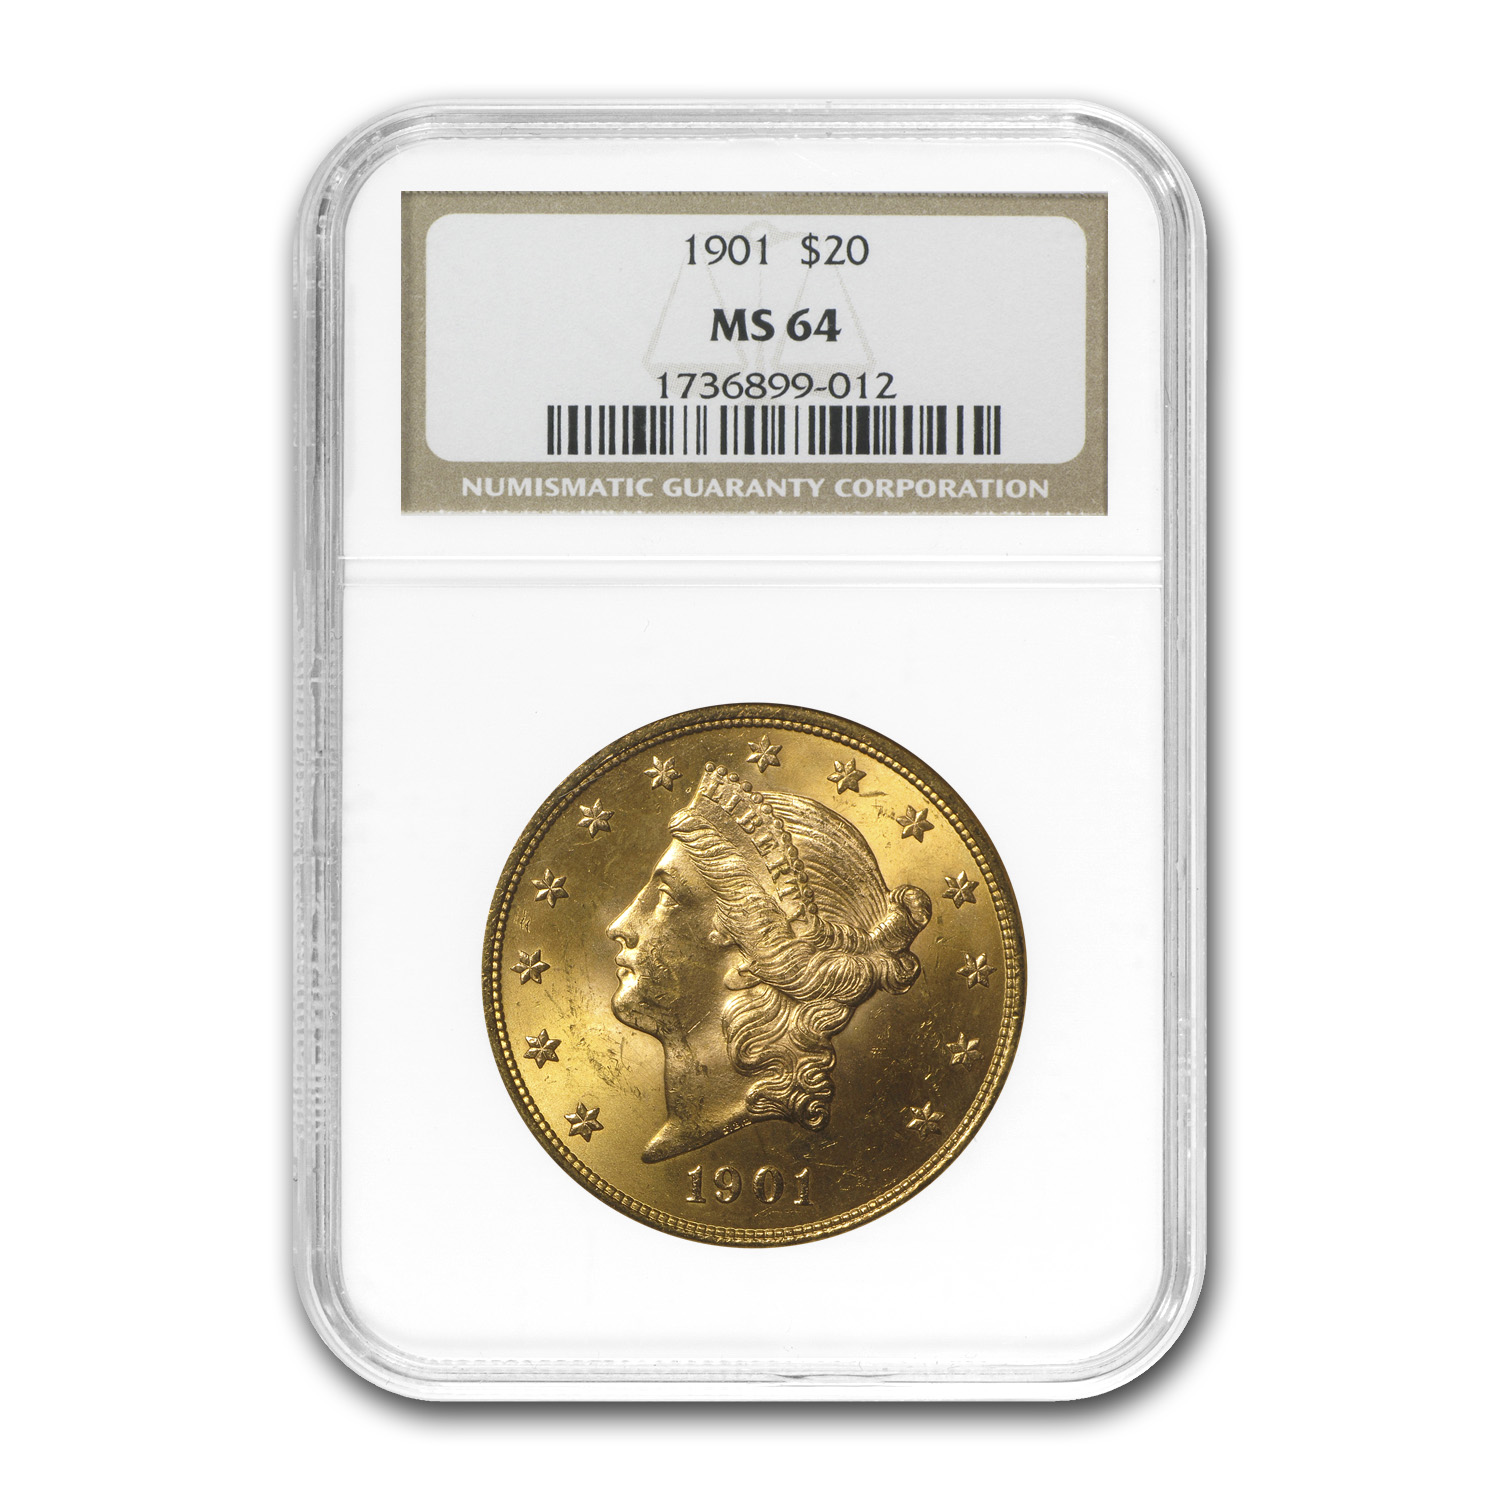 1901 $20 Gold Liberty Double Eagle - MS-64 NGC